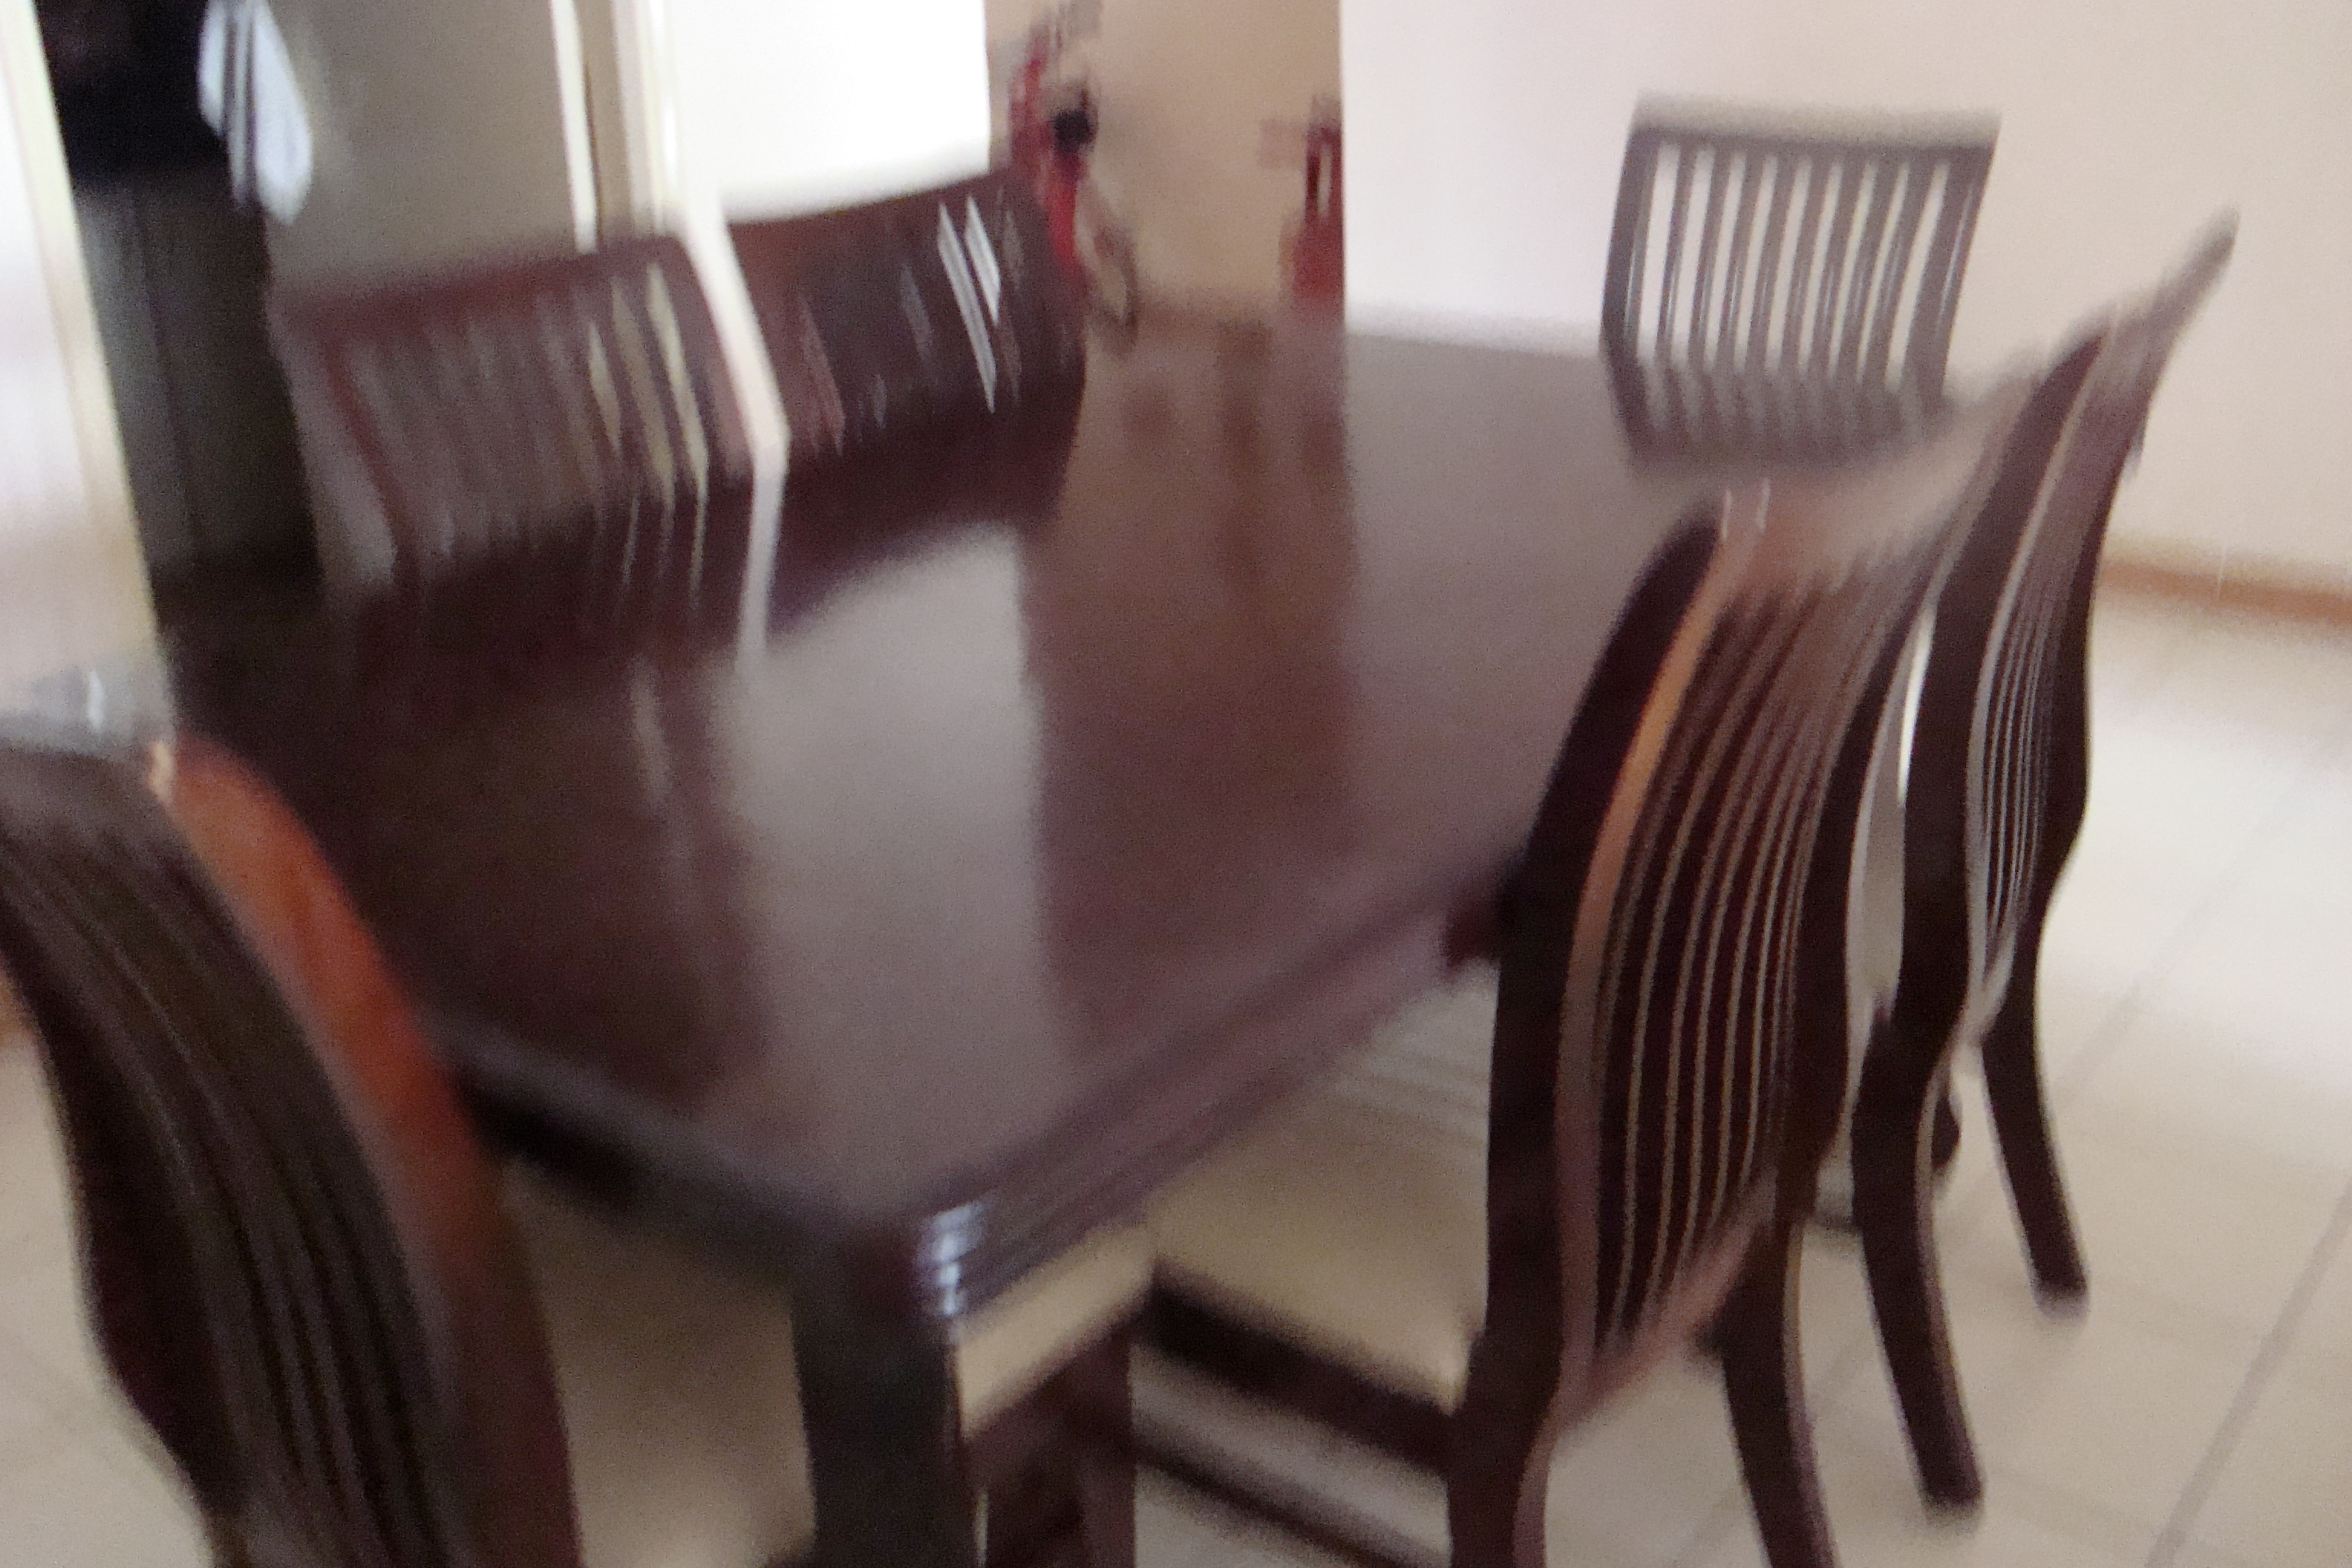 FOR SALE: Dining Table and Sofa with Centre table for sale